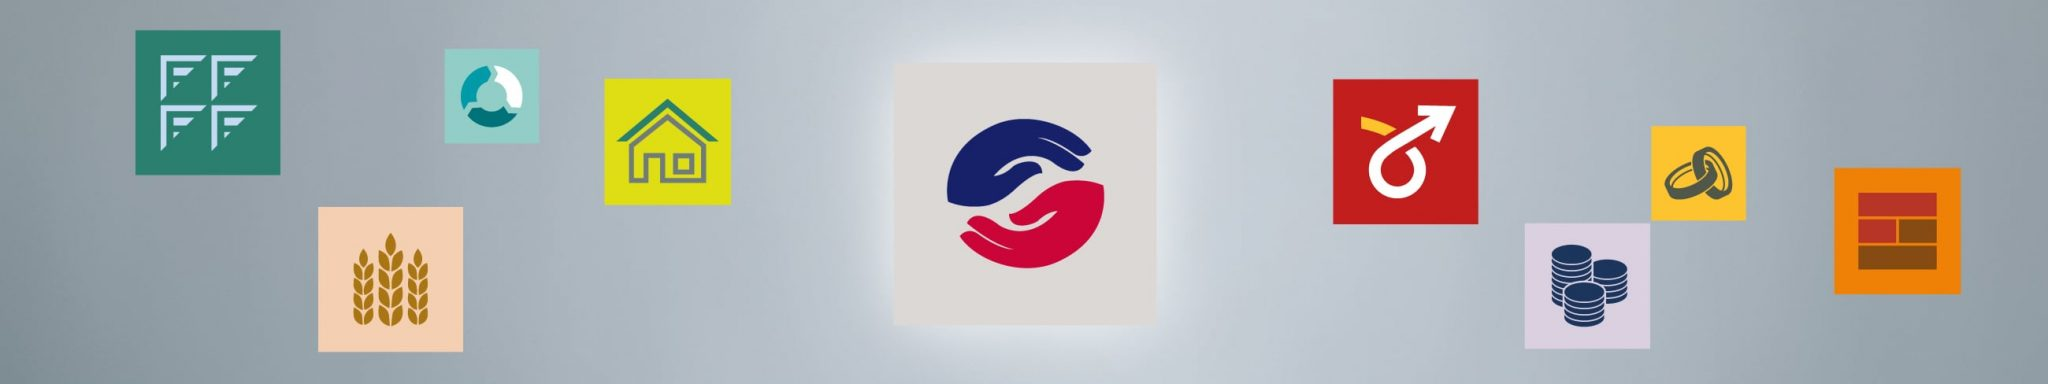 charity forum icon